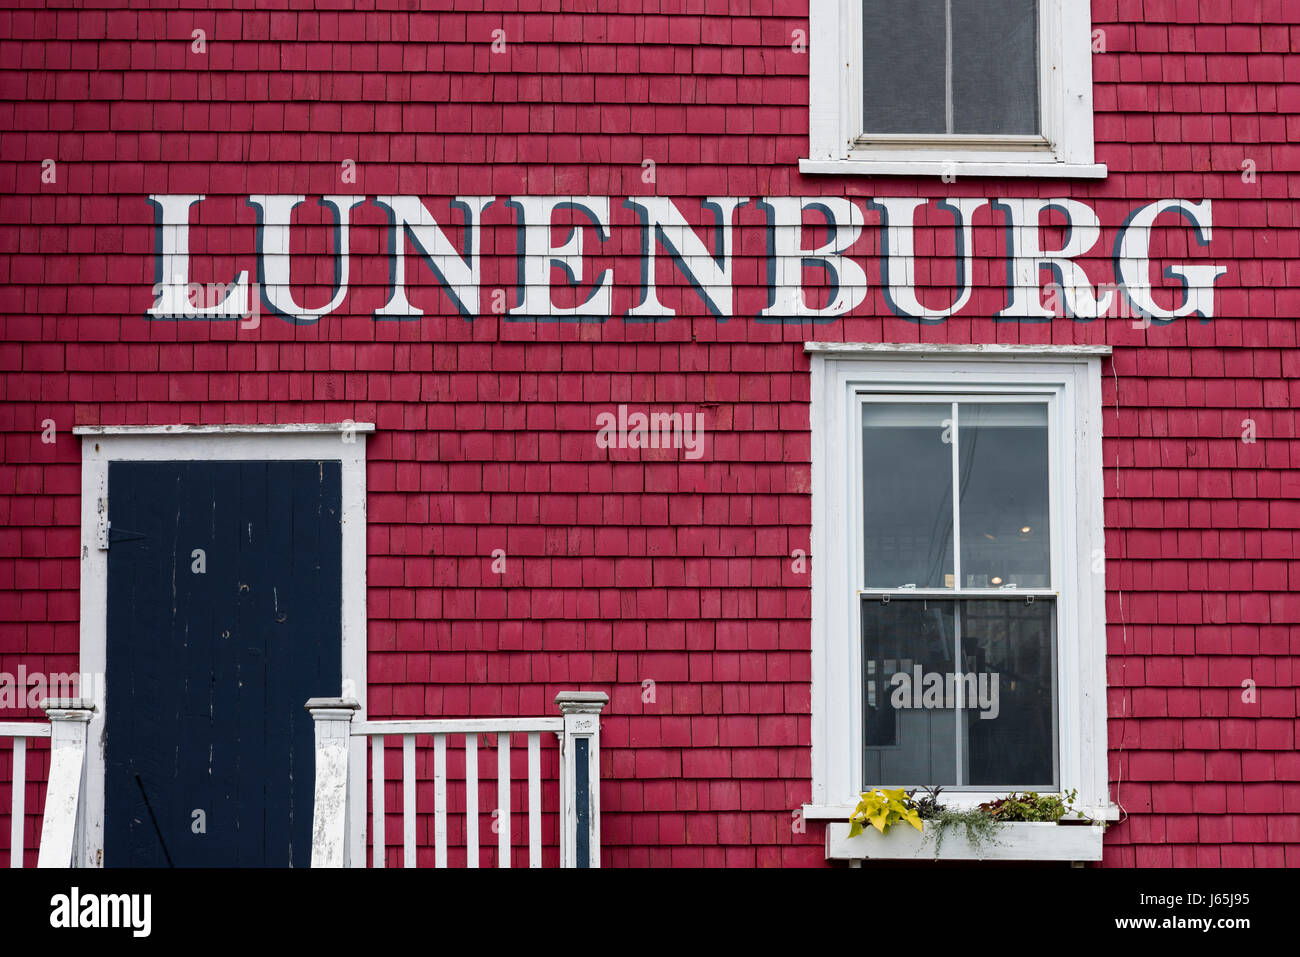 India House L Neburg lunenburg sign lunenburg stock photos lunenburg sign lunenburg stock images alamy